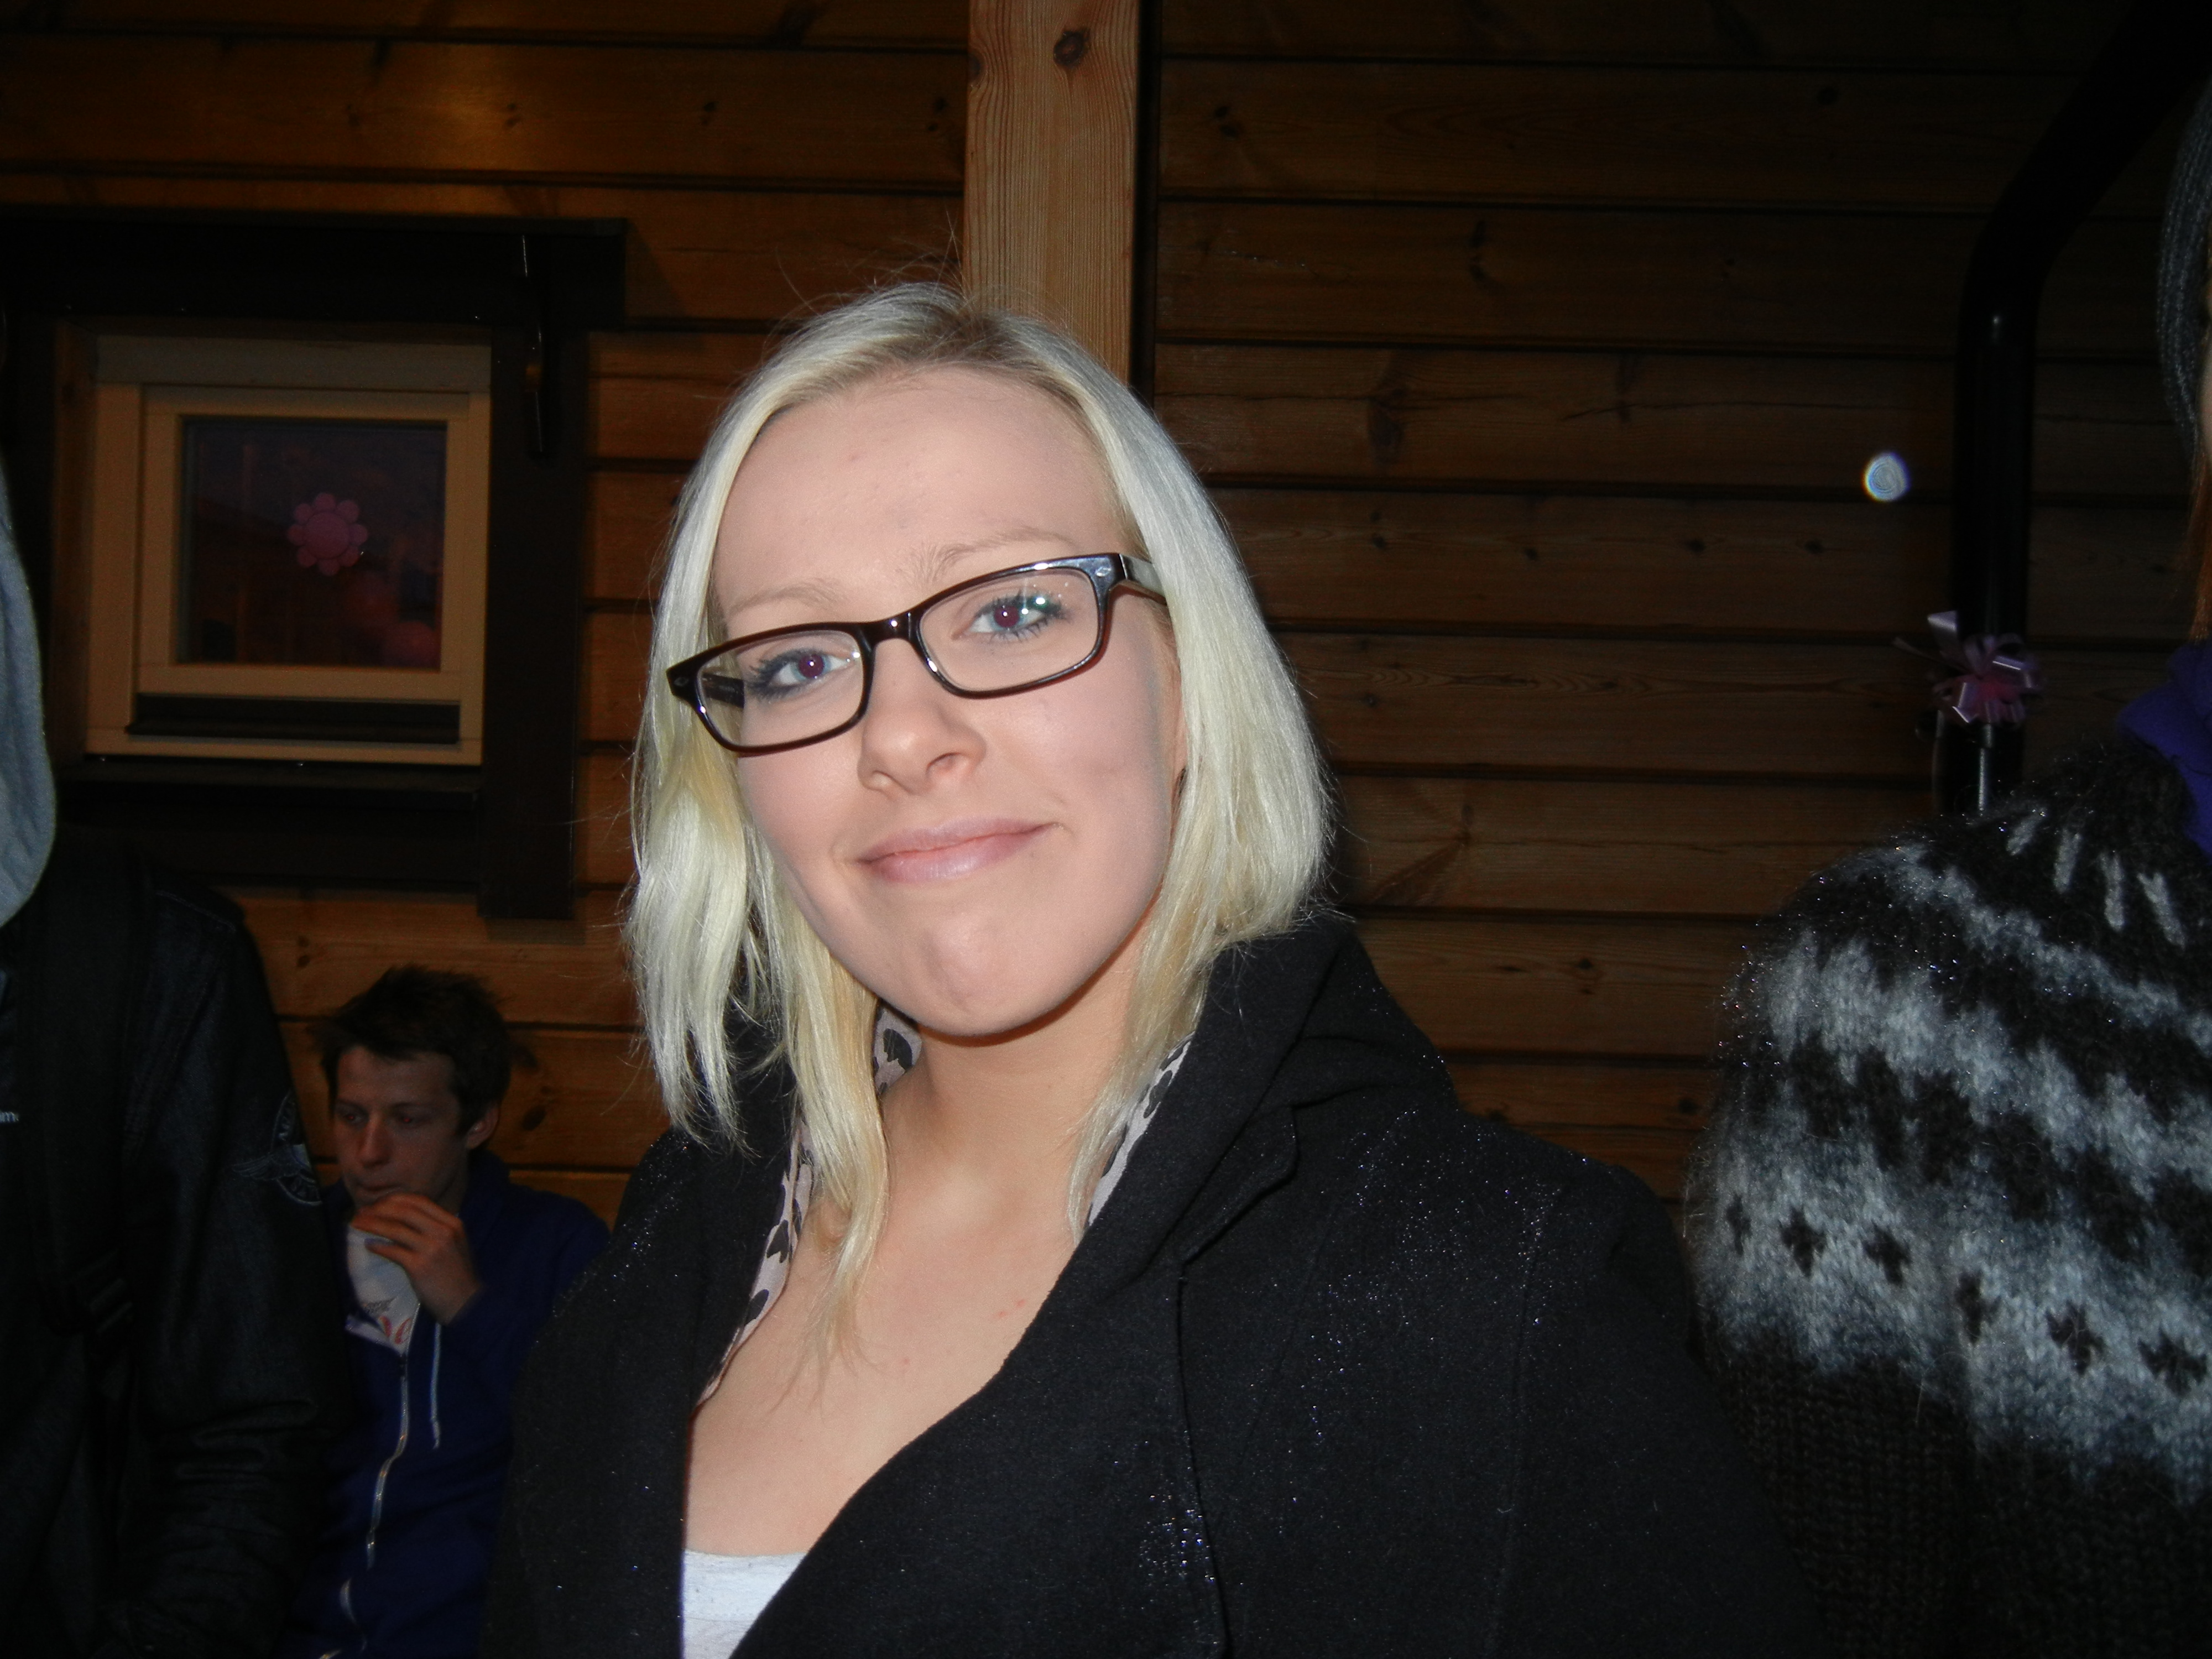 islandia bbw personals Free classifieds new york state islandia 641 jericho 773 browse the personals ads on locanto classifieds now or post your classifieds ad for free.